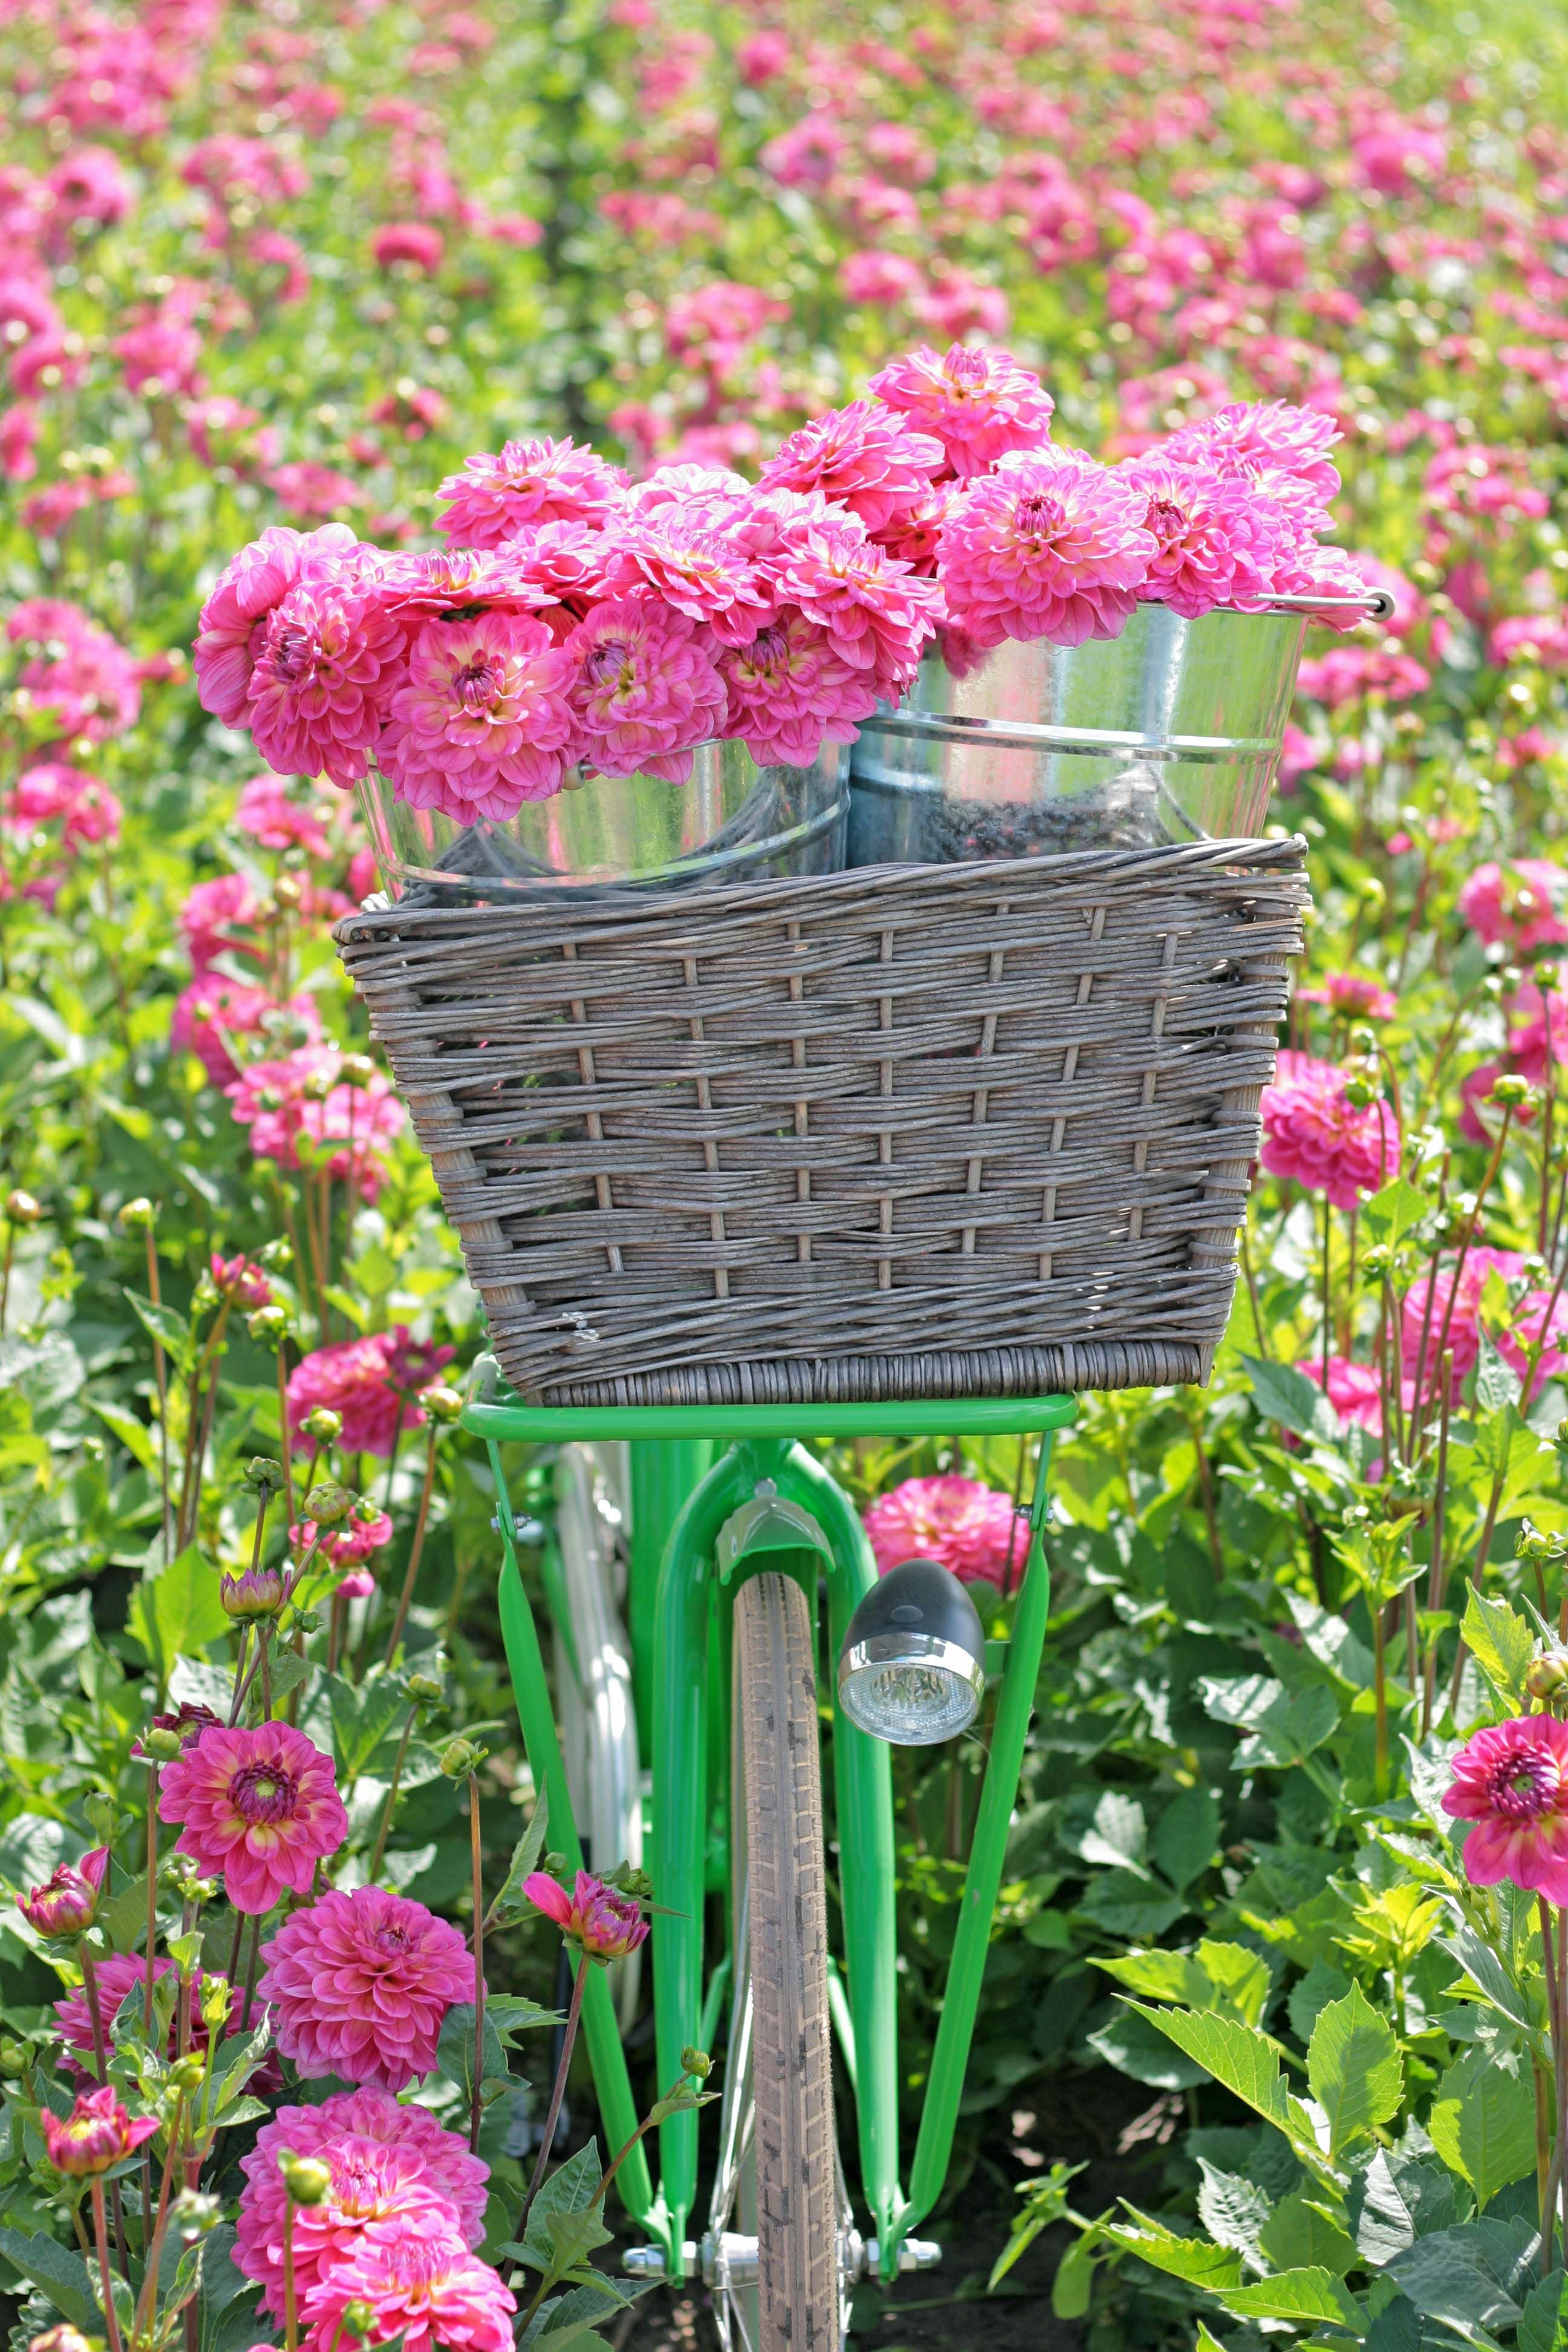 Loads of dahlias freshly picked from a huge pink flower field love loads of dahlias freshly picked from a huge pink flower field love the dutch green bike i want to have dahlias in my garden as well mightylinksfo